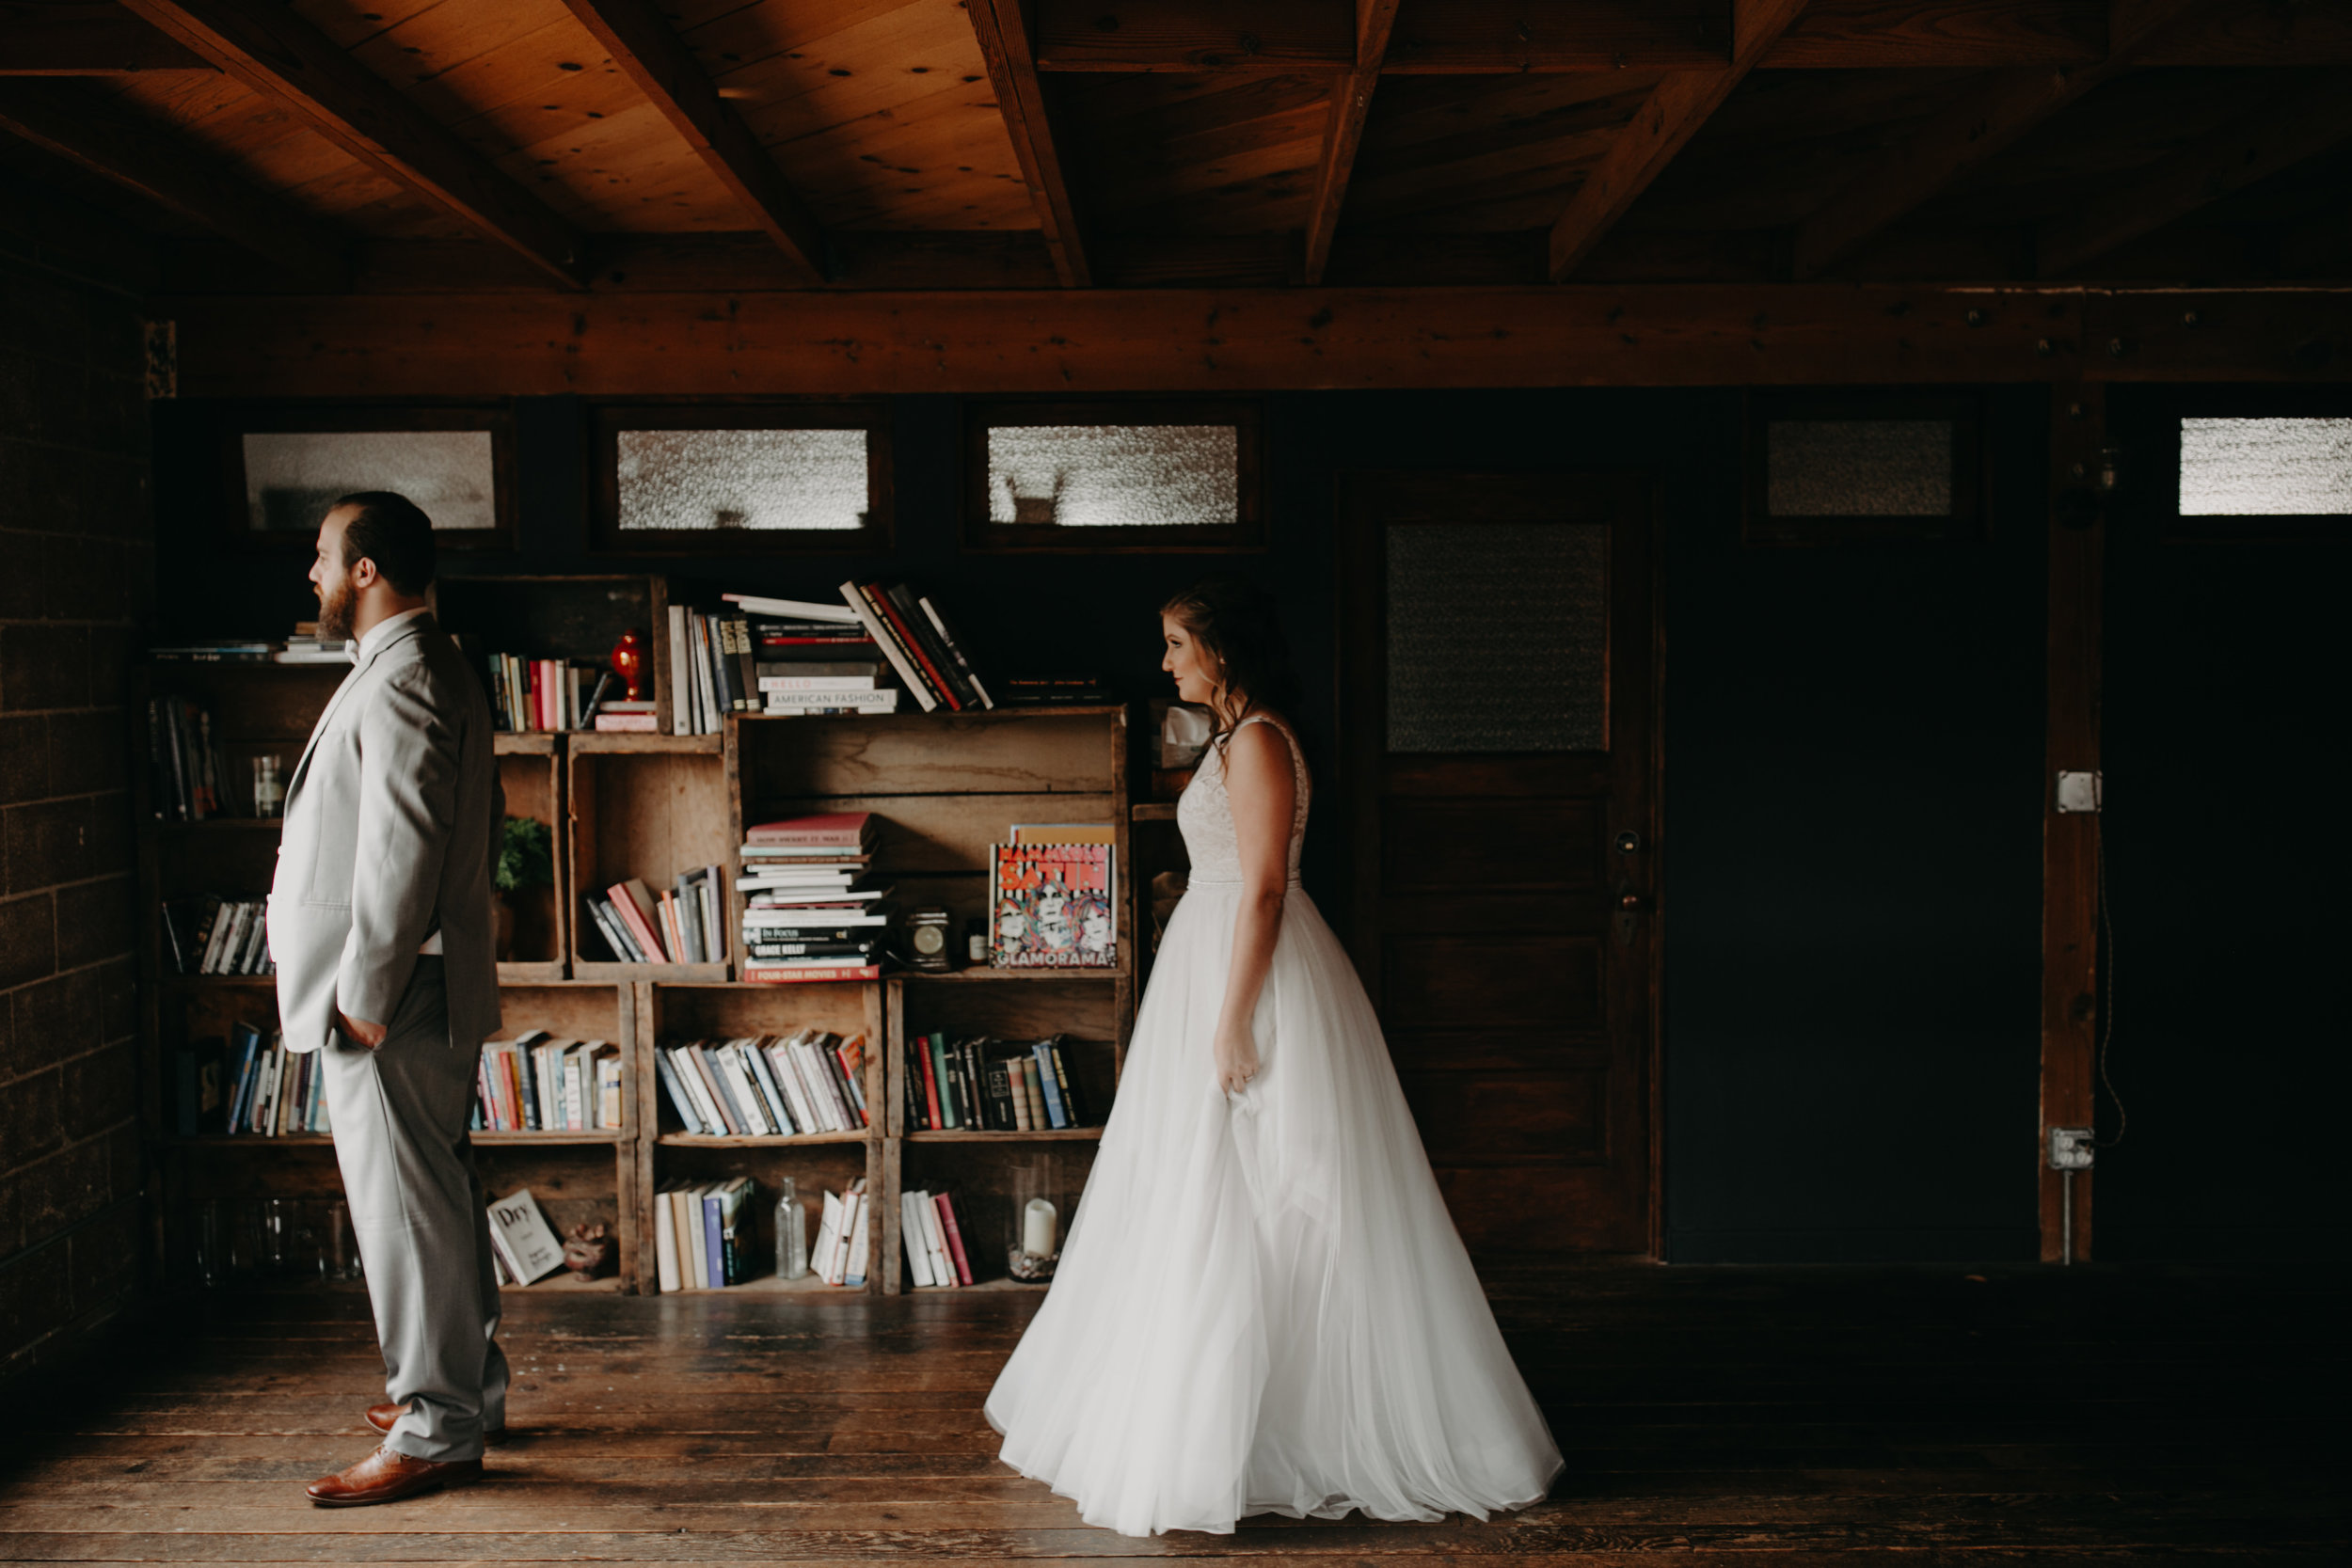 Smoky Hollow Studios Wedding Anne & Lewis Emily Magers Photography-192.jpg